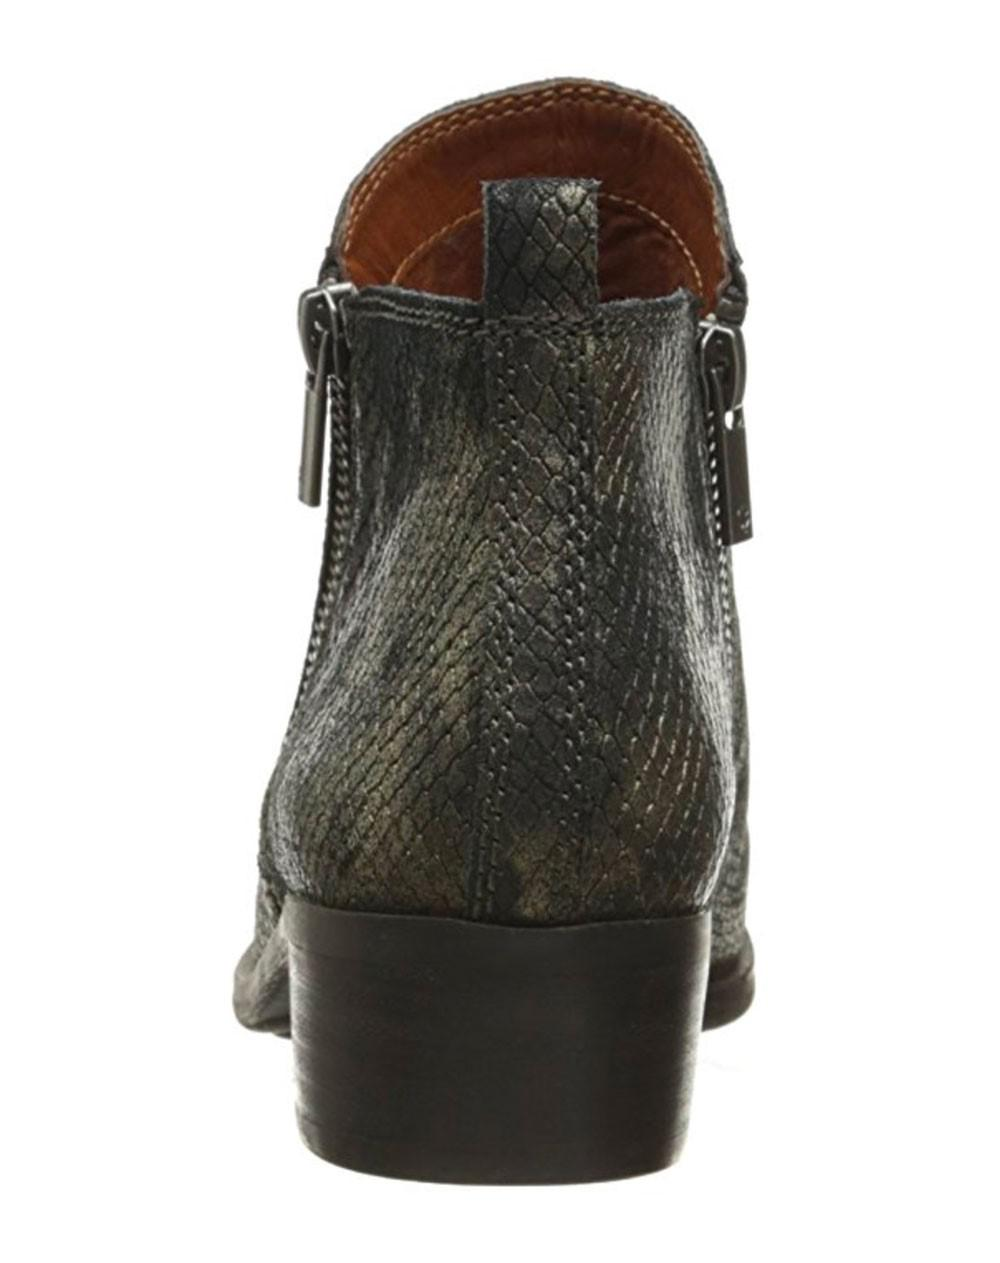 247d2371ba54 Lyst - Lucky Brand Basel Black   Gold Flat Booties in Black